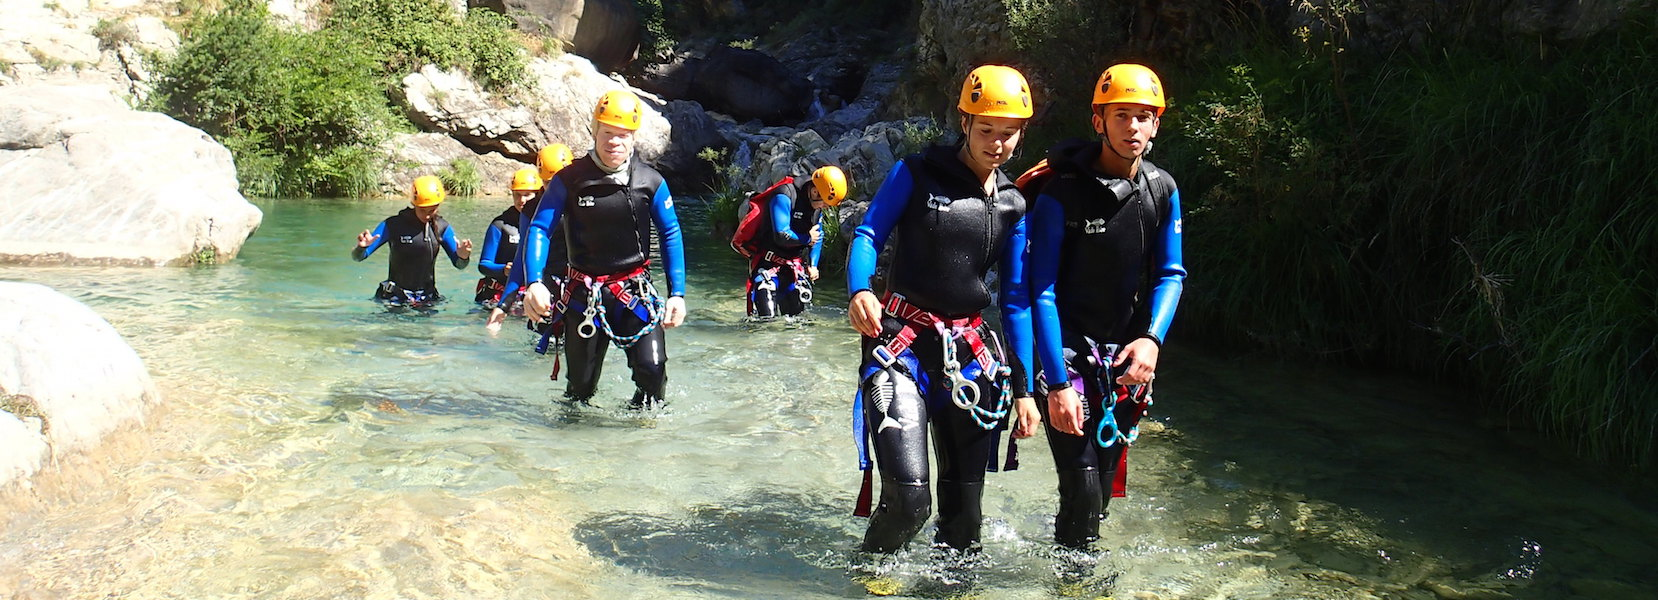 Journée canyoning à barbaira en Italie.